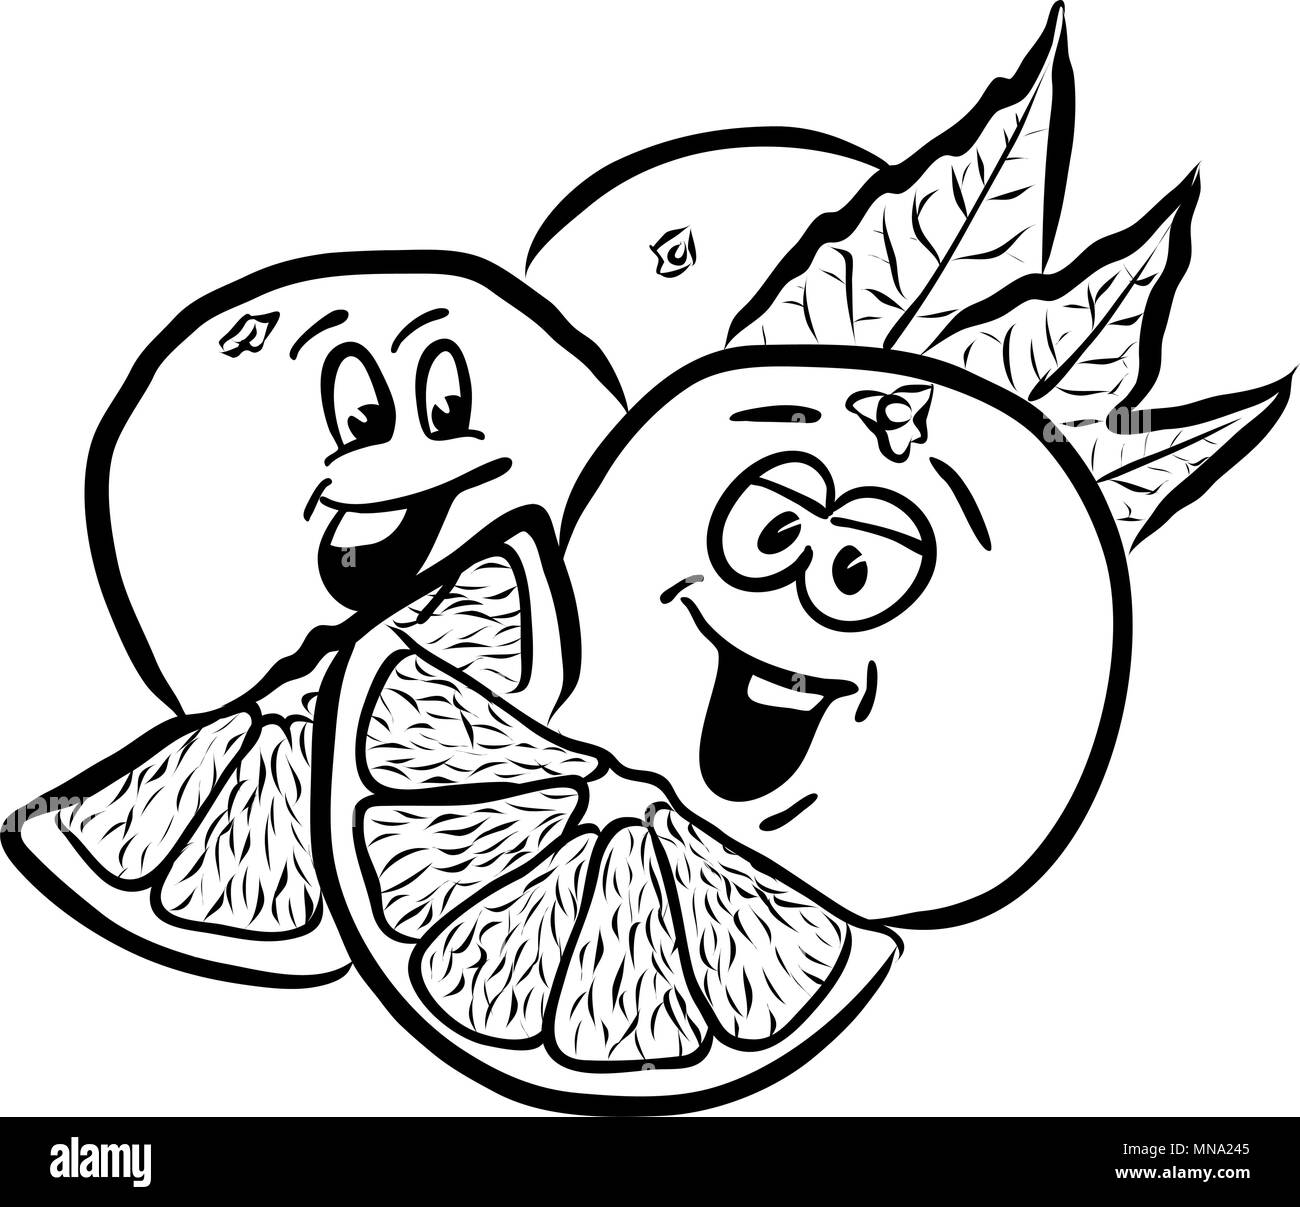 Laughing Oranges Comic Fruits Sketches. Hand drawn Vector Outline Illustrations. Useful for any kind of advertising in web and print. - Stock Image